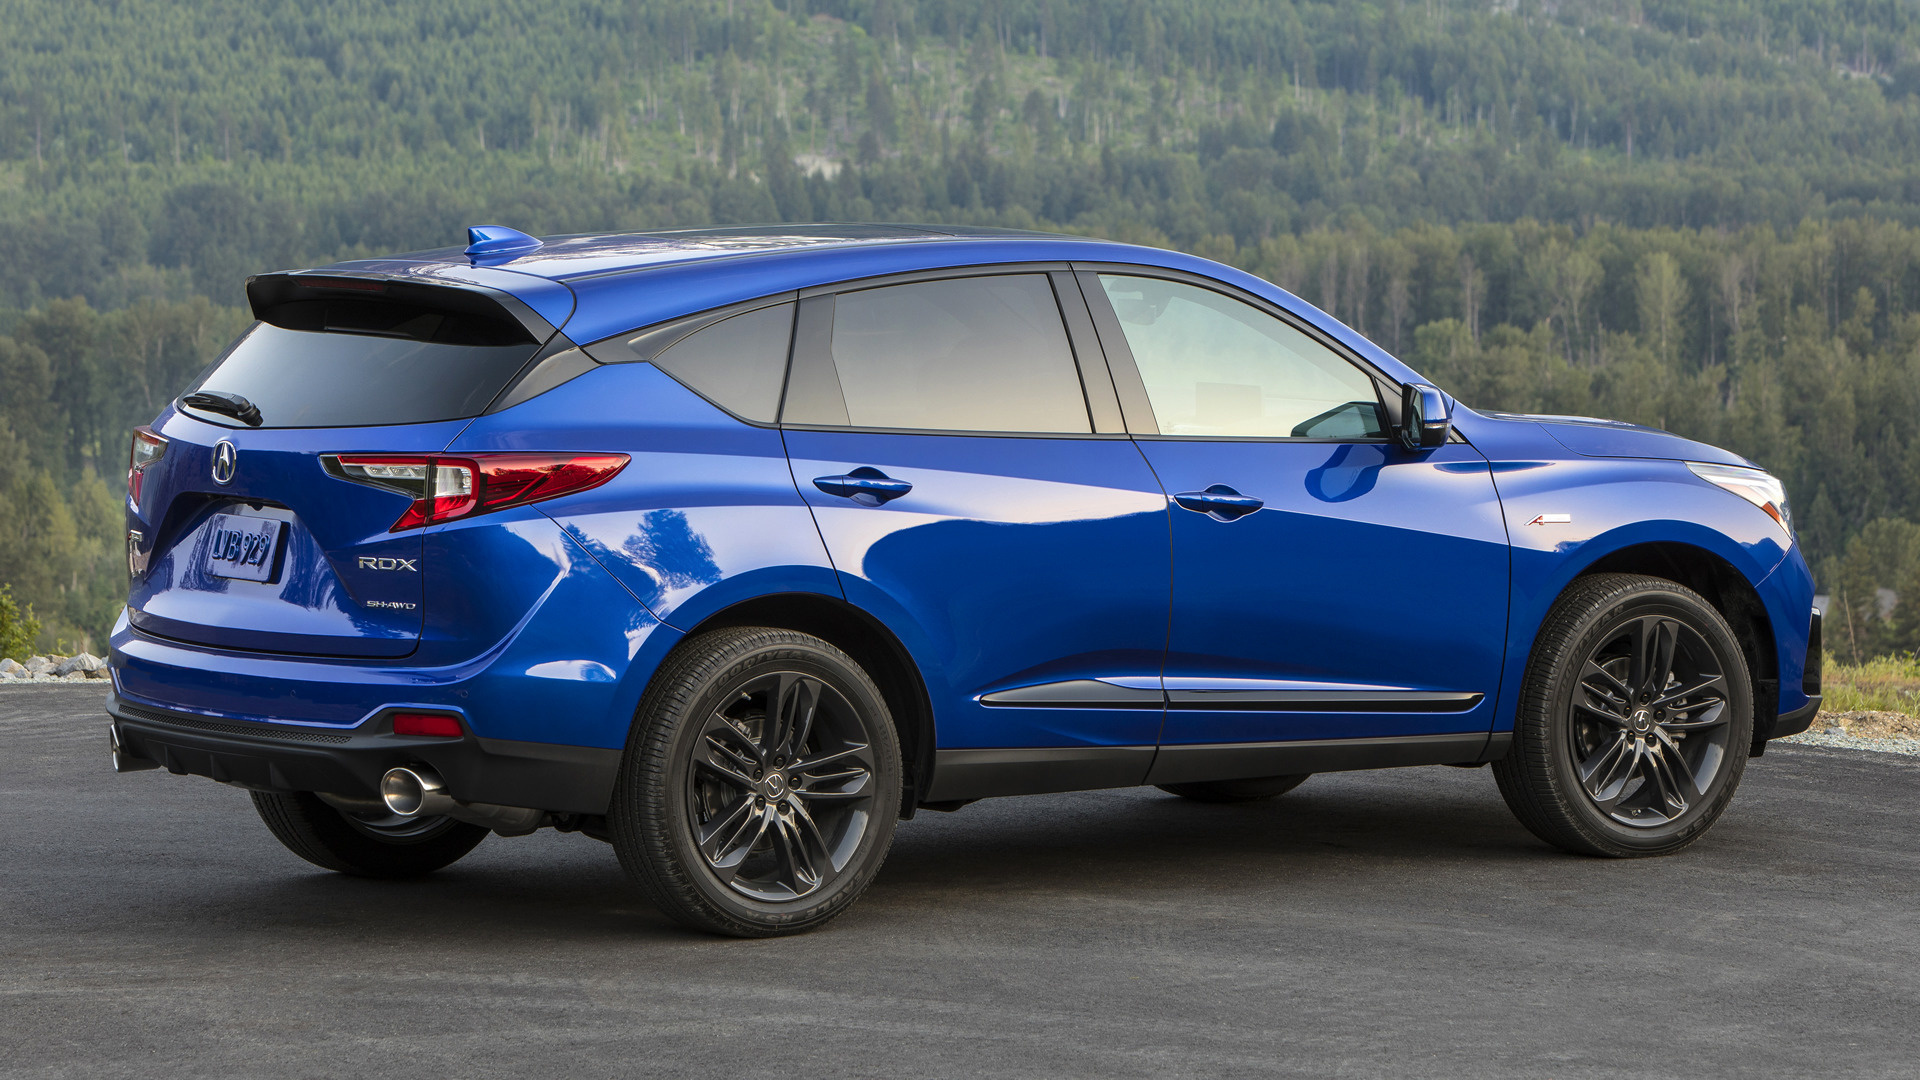 Civic Type R Canada >> 2019 Acura RDX A-Spec - Wallpapers and HD Images | Car Pixel